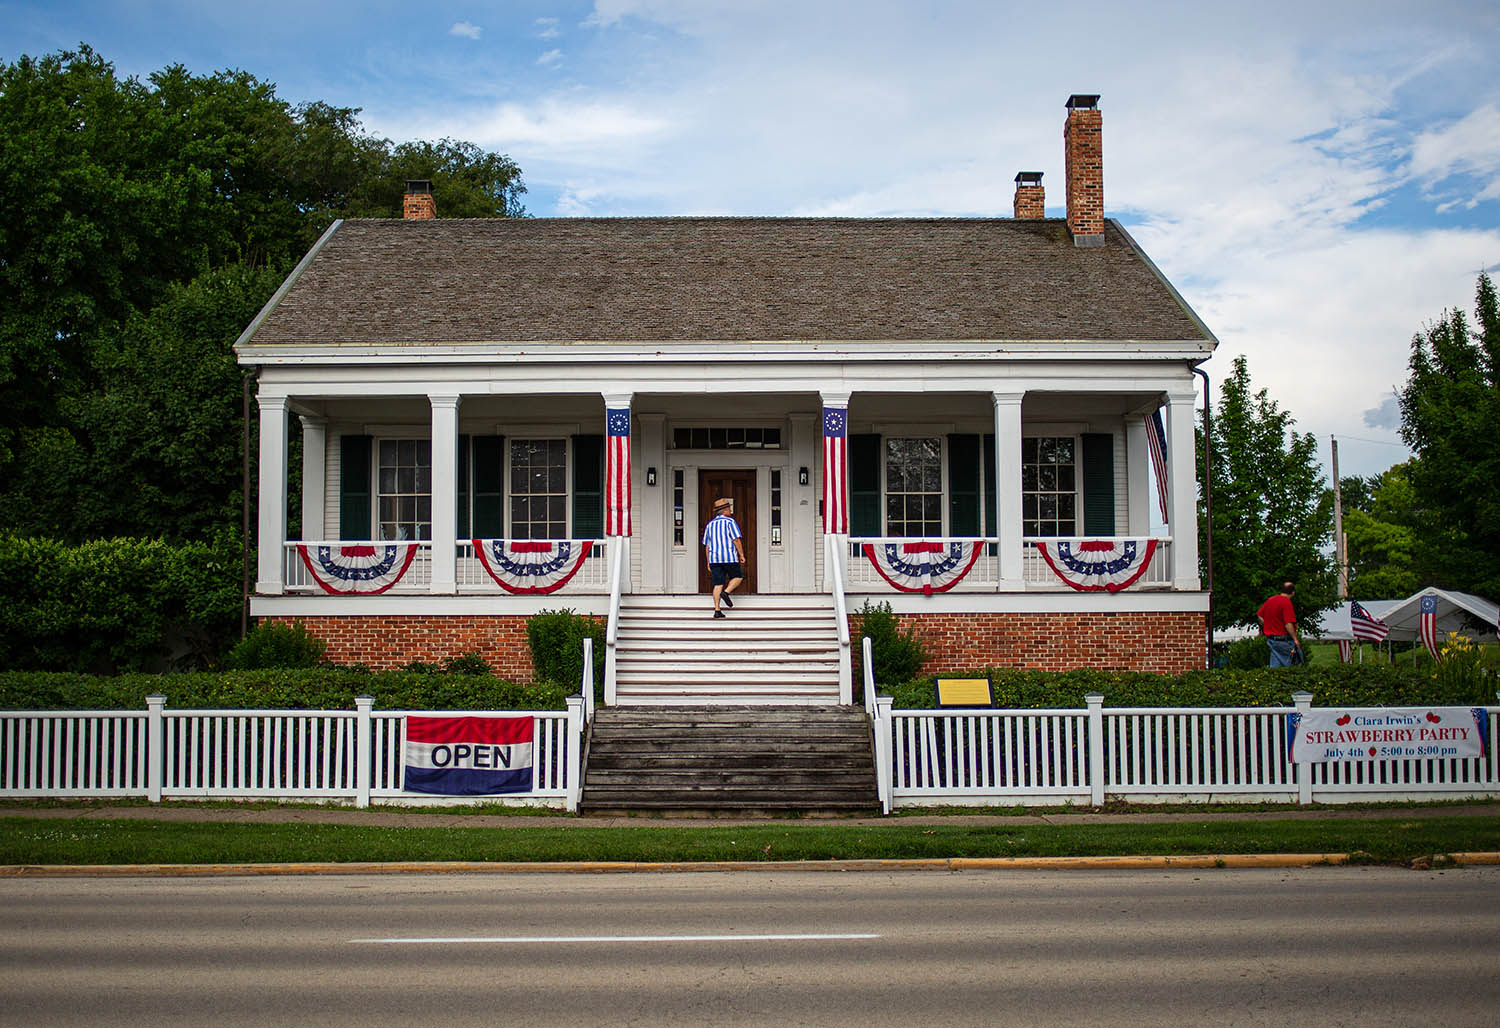 "The historic Elijah Iles House was built in 1837 and is one of the oldest surviving houses in Springfield and serves as the host for the annual ""Clara Irwin's Strawberry Party"" on the 4th of July, Thursday, July 4, 2019, in Springfield, Ill. The annual event celebrates Clara Irwin, who was the spouse of the second owner of the Elijah Iles House, and was known for her advocacy of the horticultural arts and also for her strawberries and strawberry parties in the 1840s and '50s. [Justin L. Fowler/The State Journal-Register]"